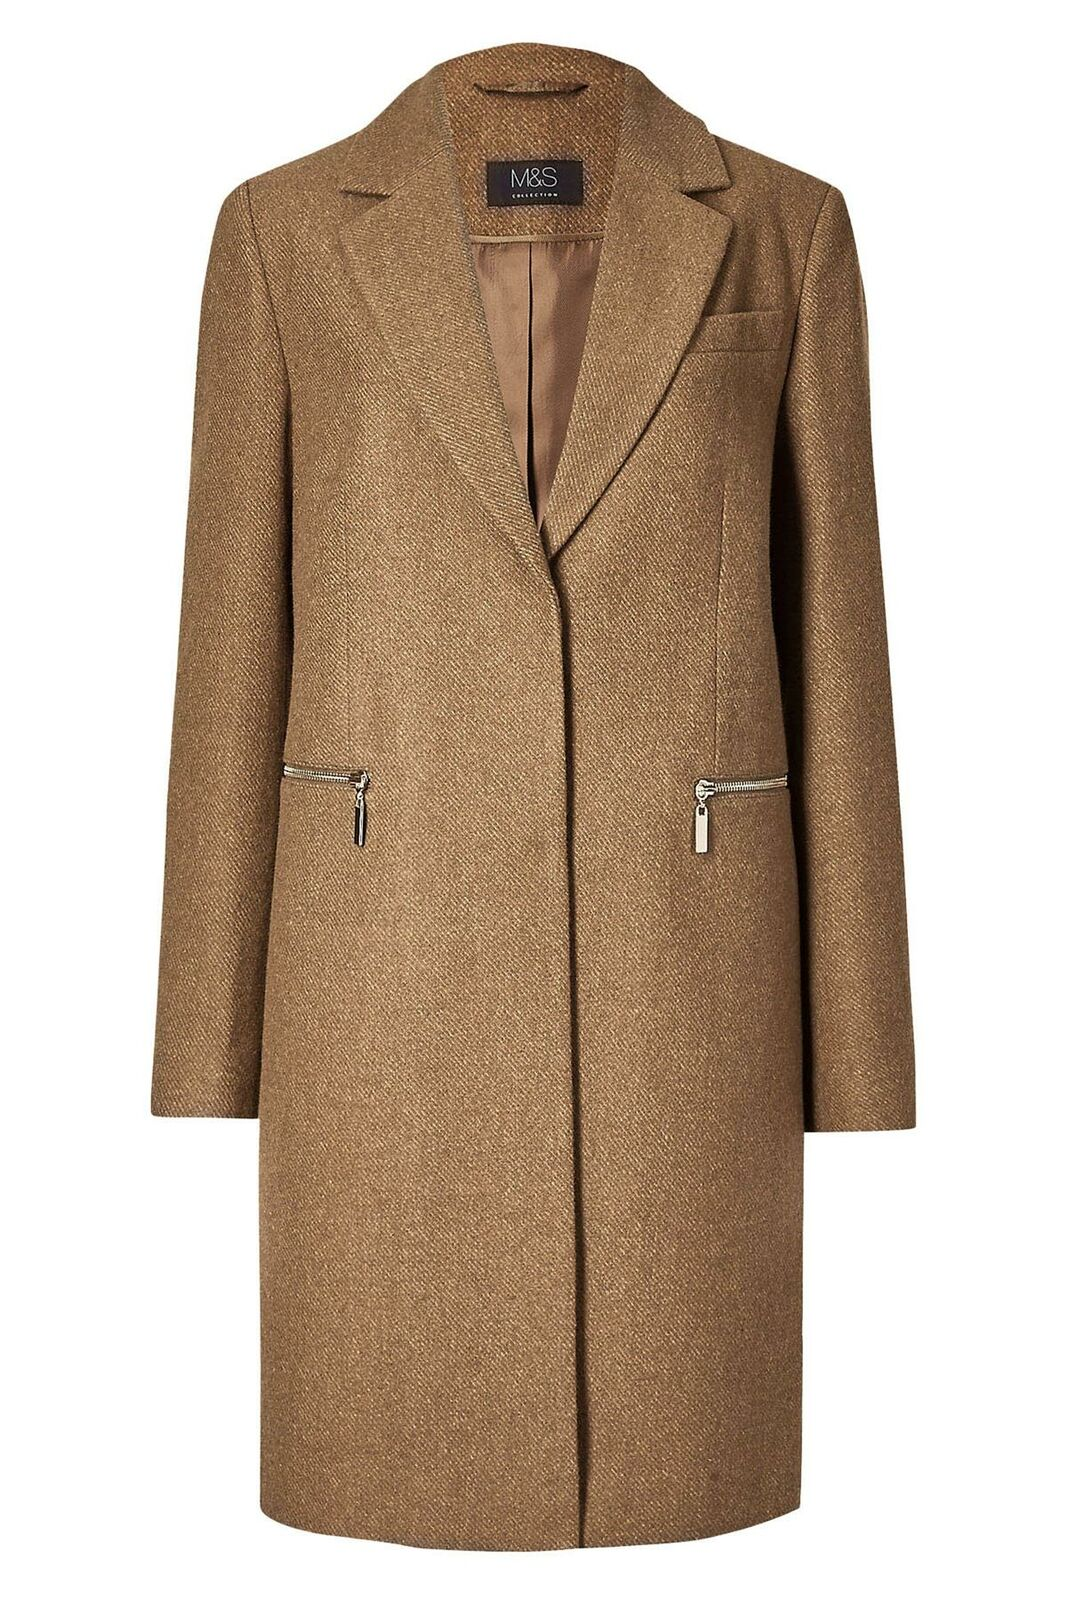 M-amp-S-Wool-Blend-Single-Breasted-Pink-Brown-Winter-Coat-Holly-Willoughby-Size-6-24 thumbnail 20